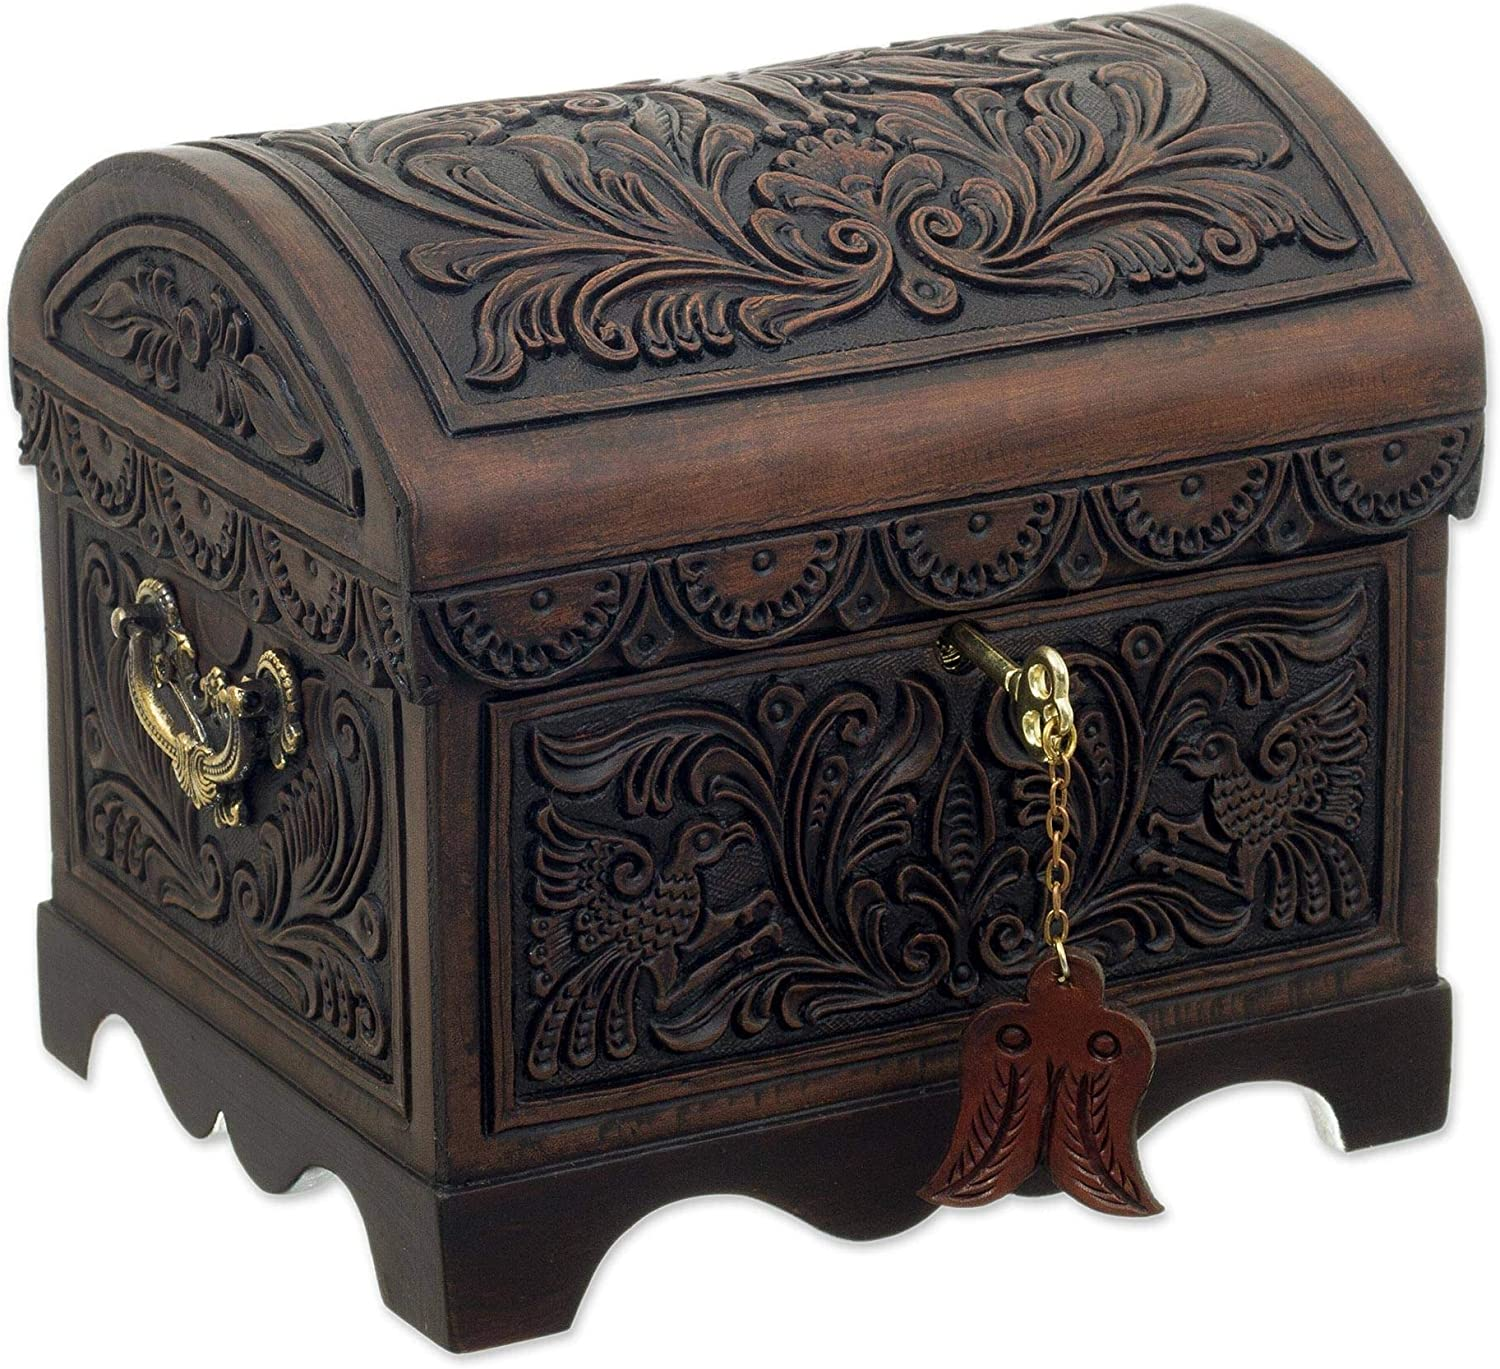 NOVICA Brown Max 56% OFF online shopping Bird Theme Treasure Chest Leather Wood Tooled D and